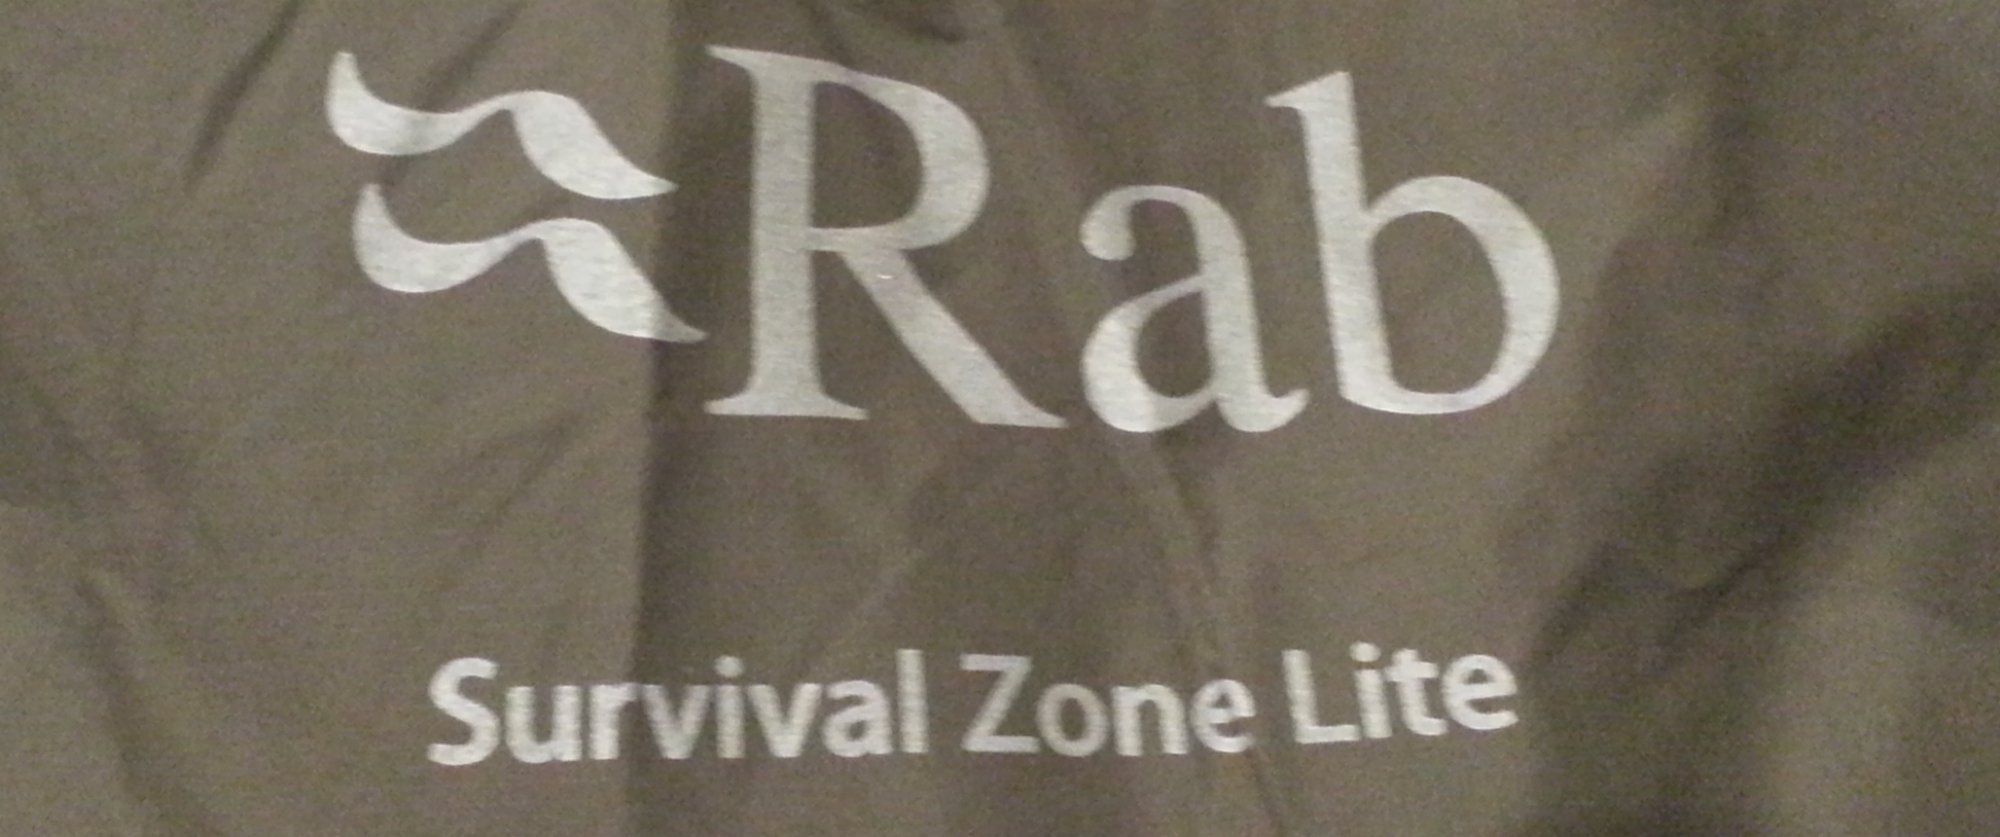 Rab survival zone lite